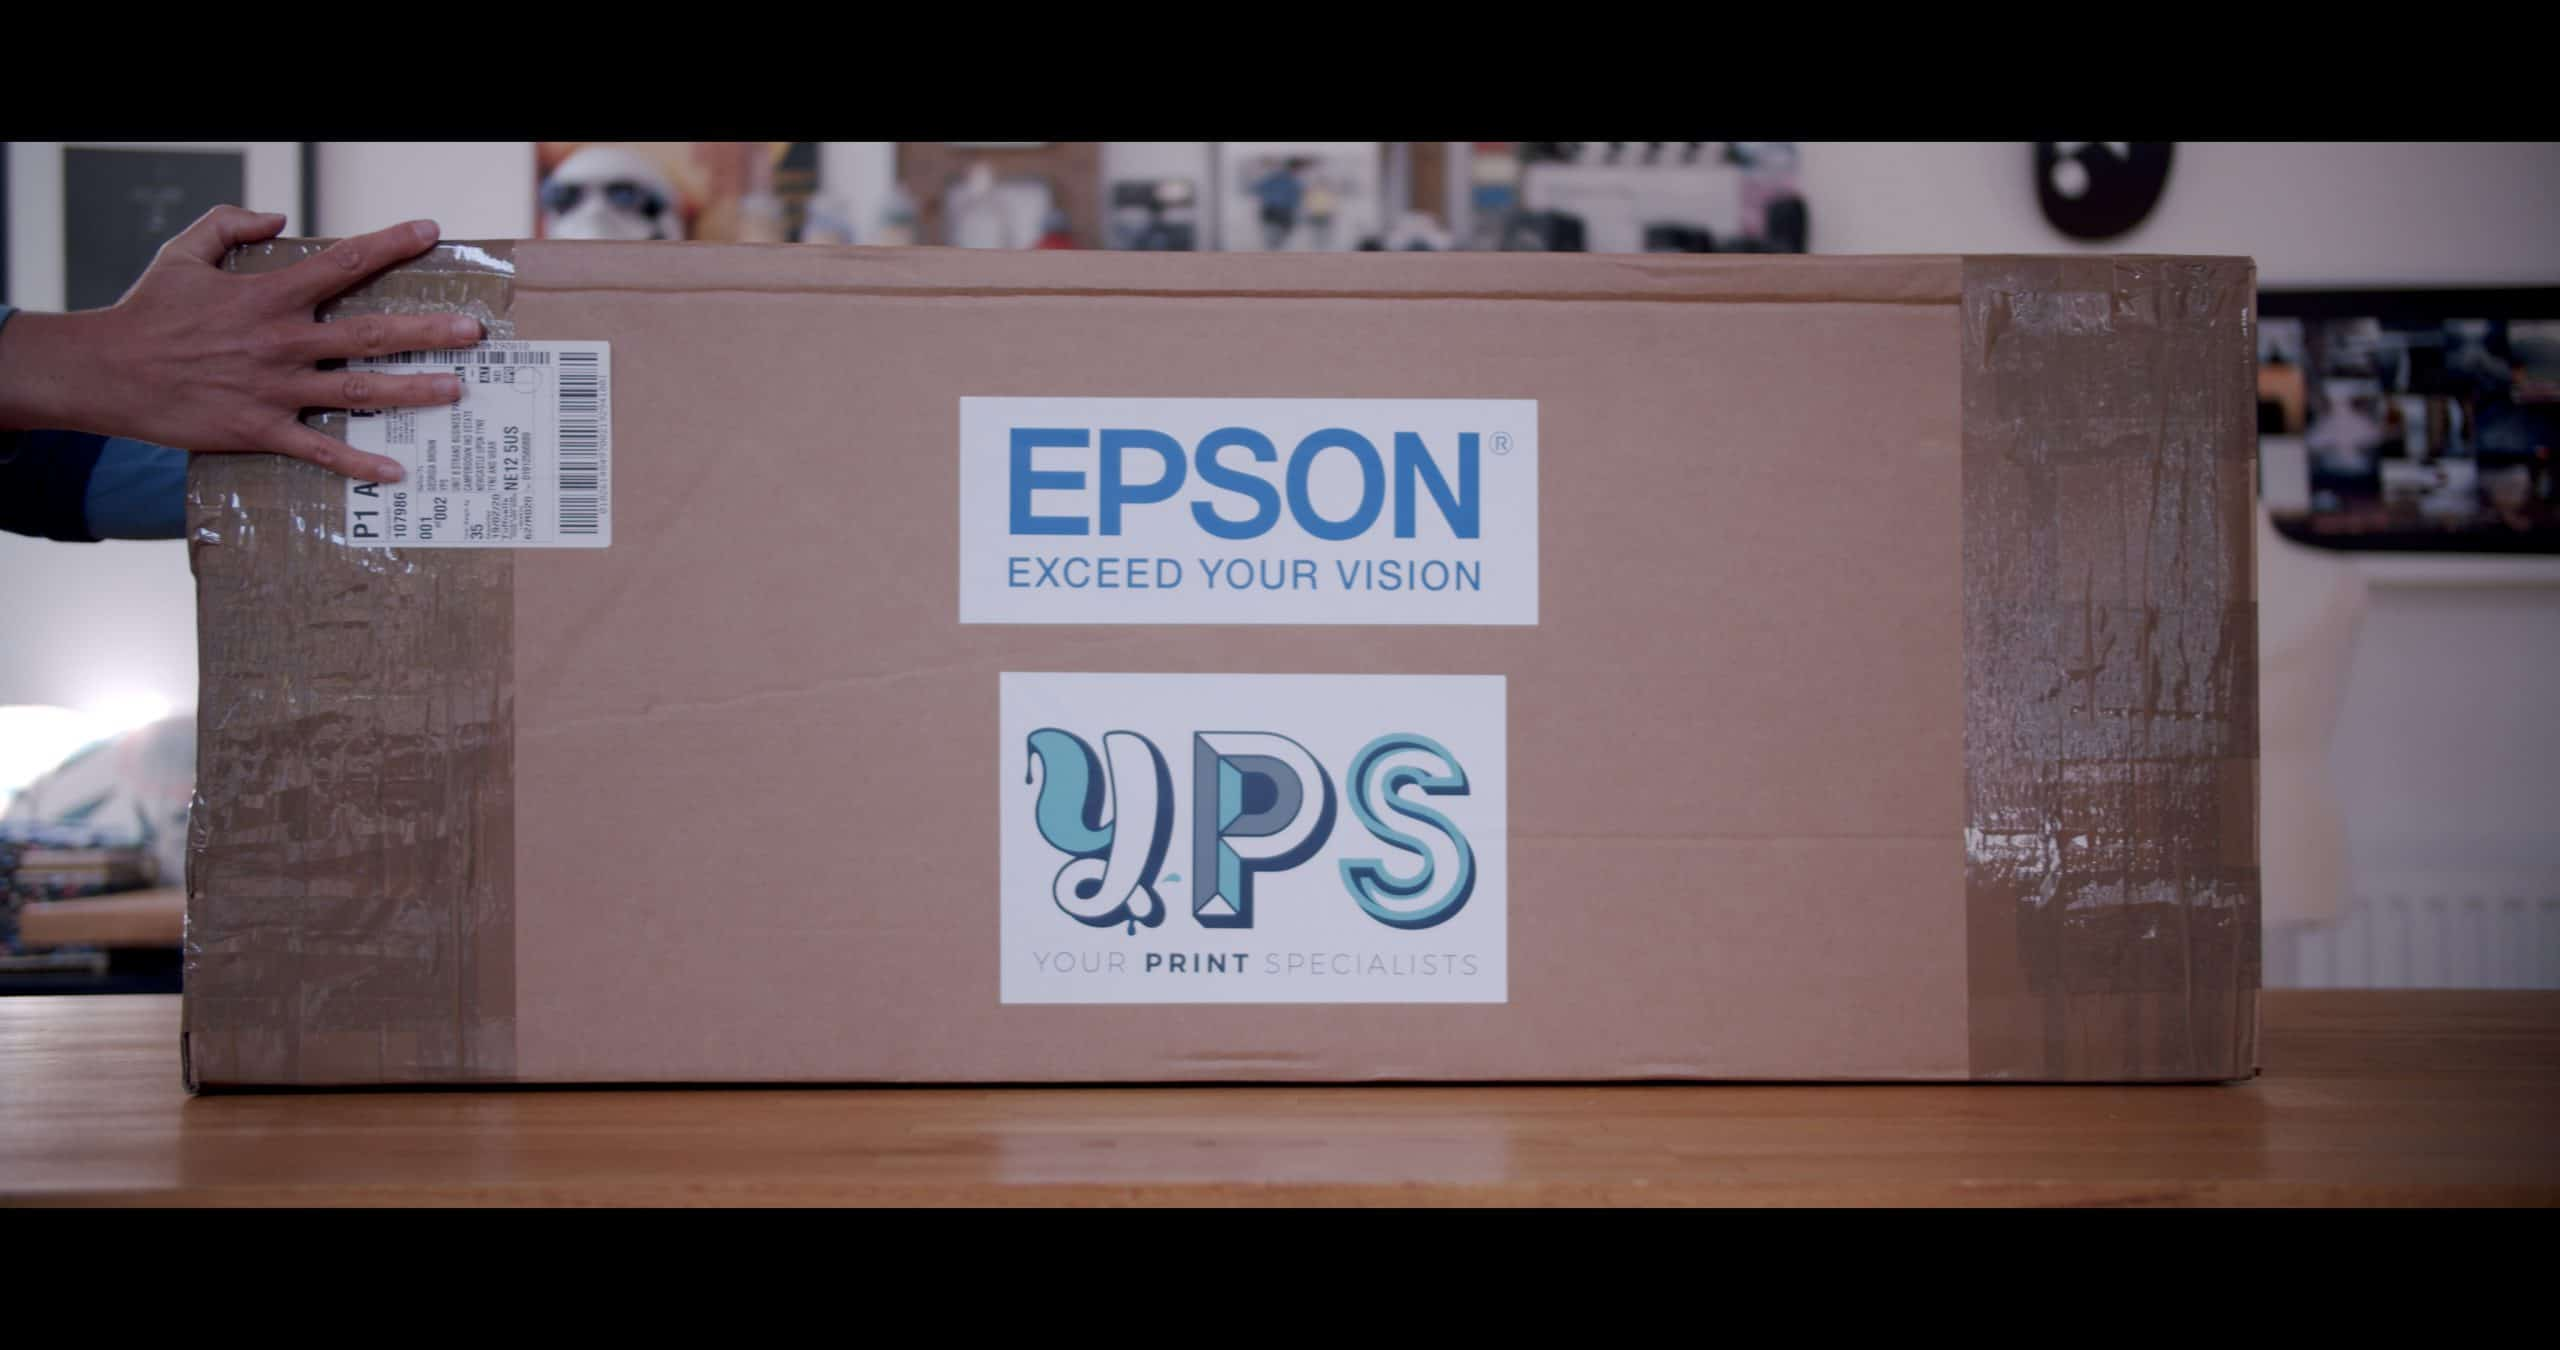 epson - fathers day